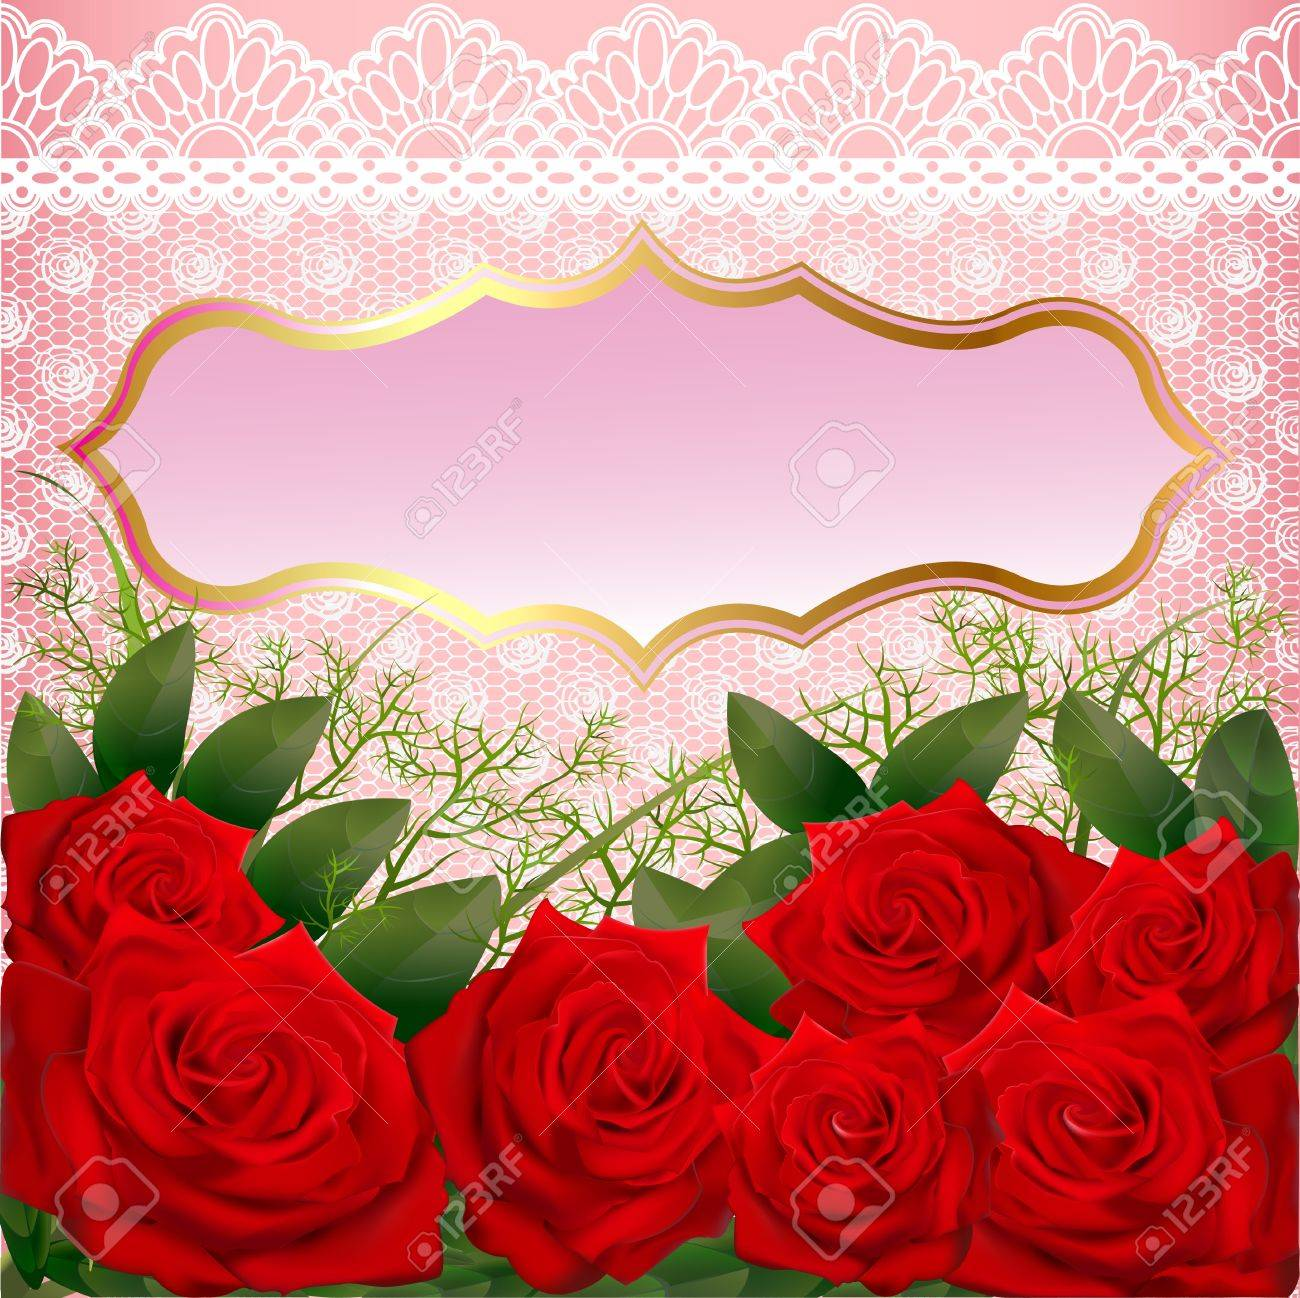 illustration background with red roses and lace Stock Vector - 17472106